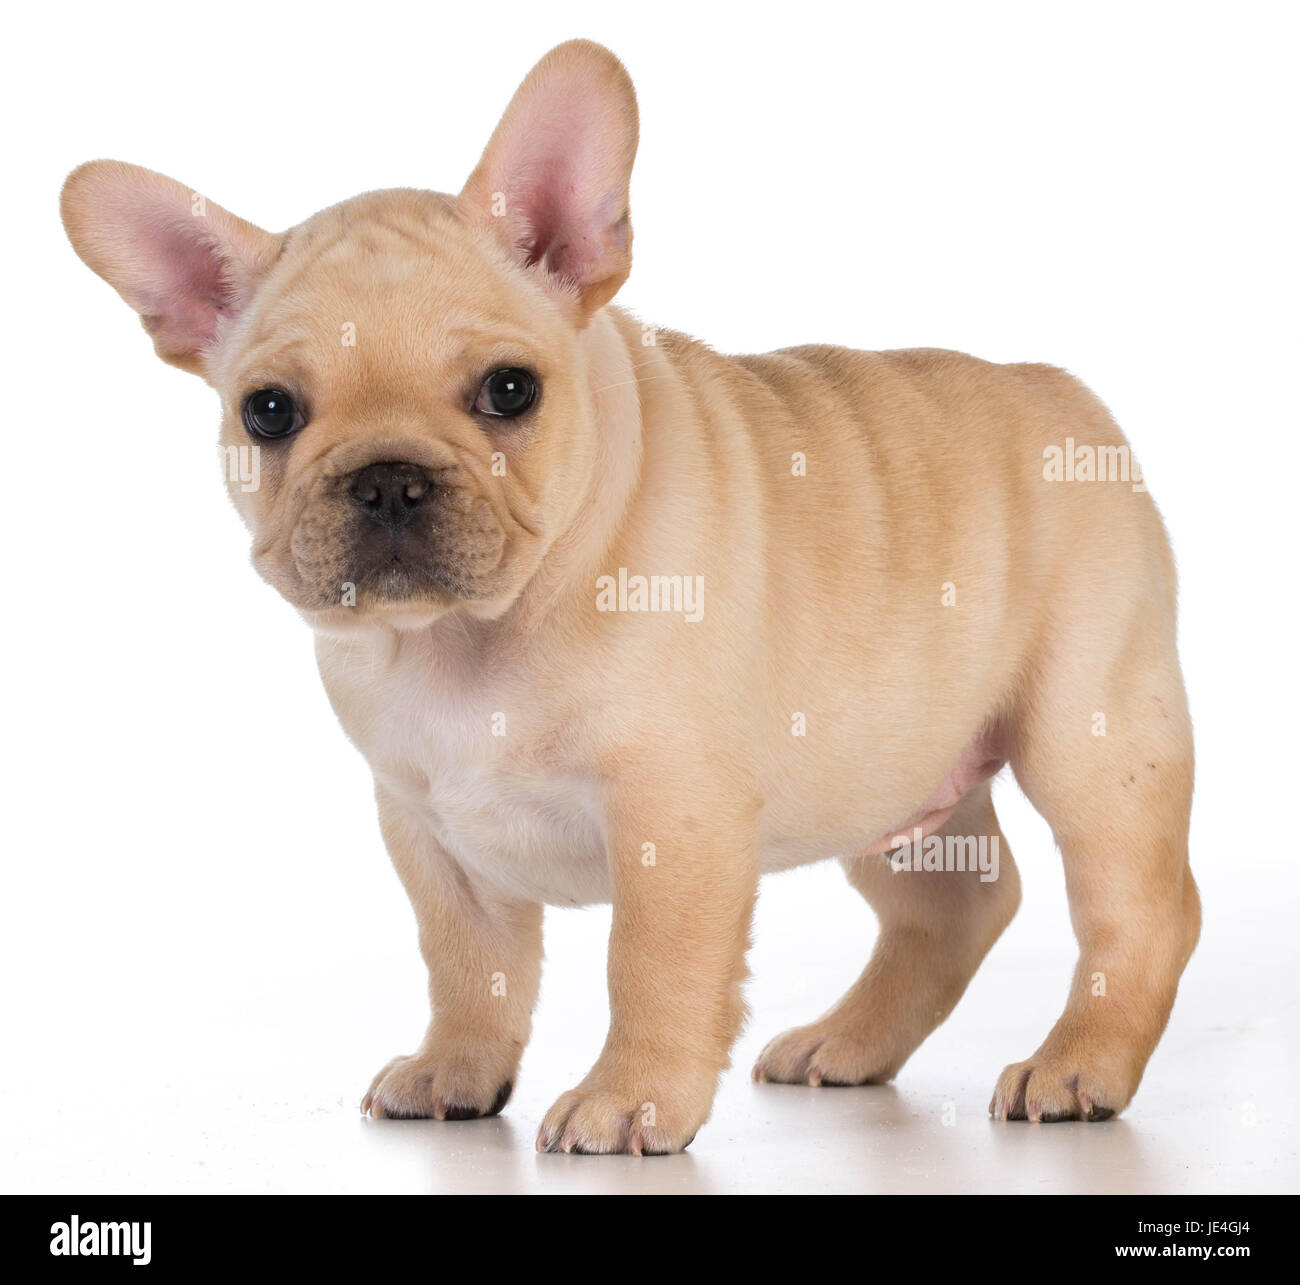 Cute Puppy French Bulldog Puppy Standing Looking At Viewer 7